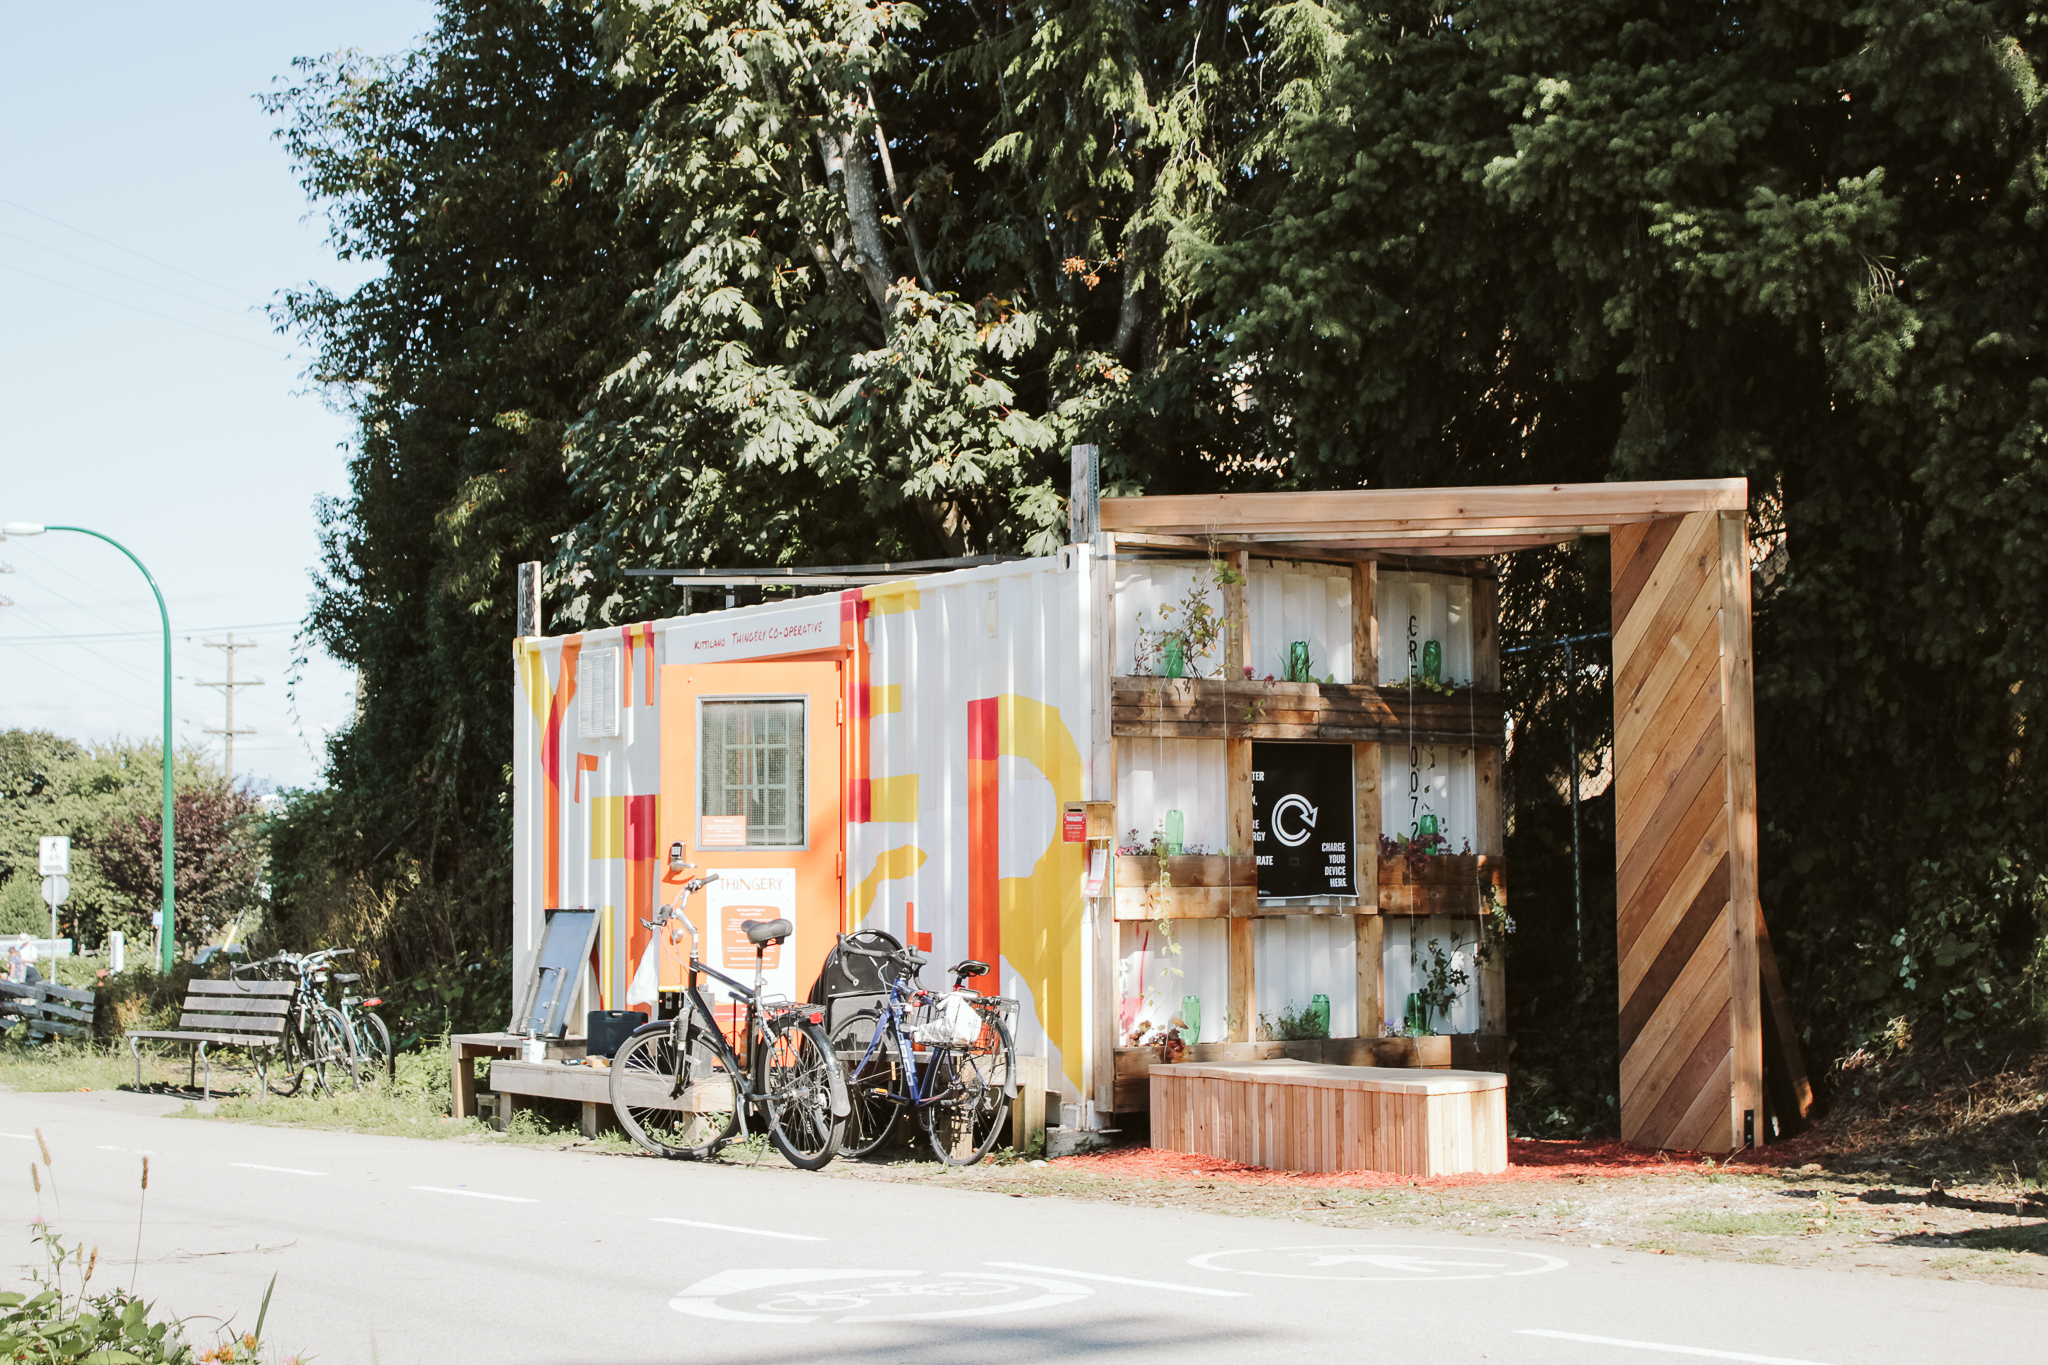 Neighbour Hub 002  sits alongside the Thingery in Kitsilano, Vancouver to activate this existing community resource.